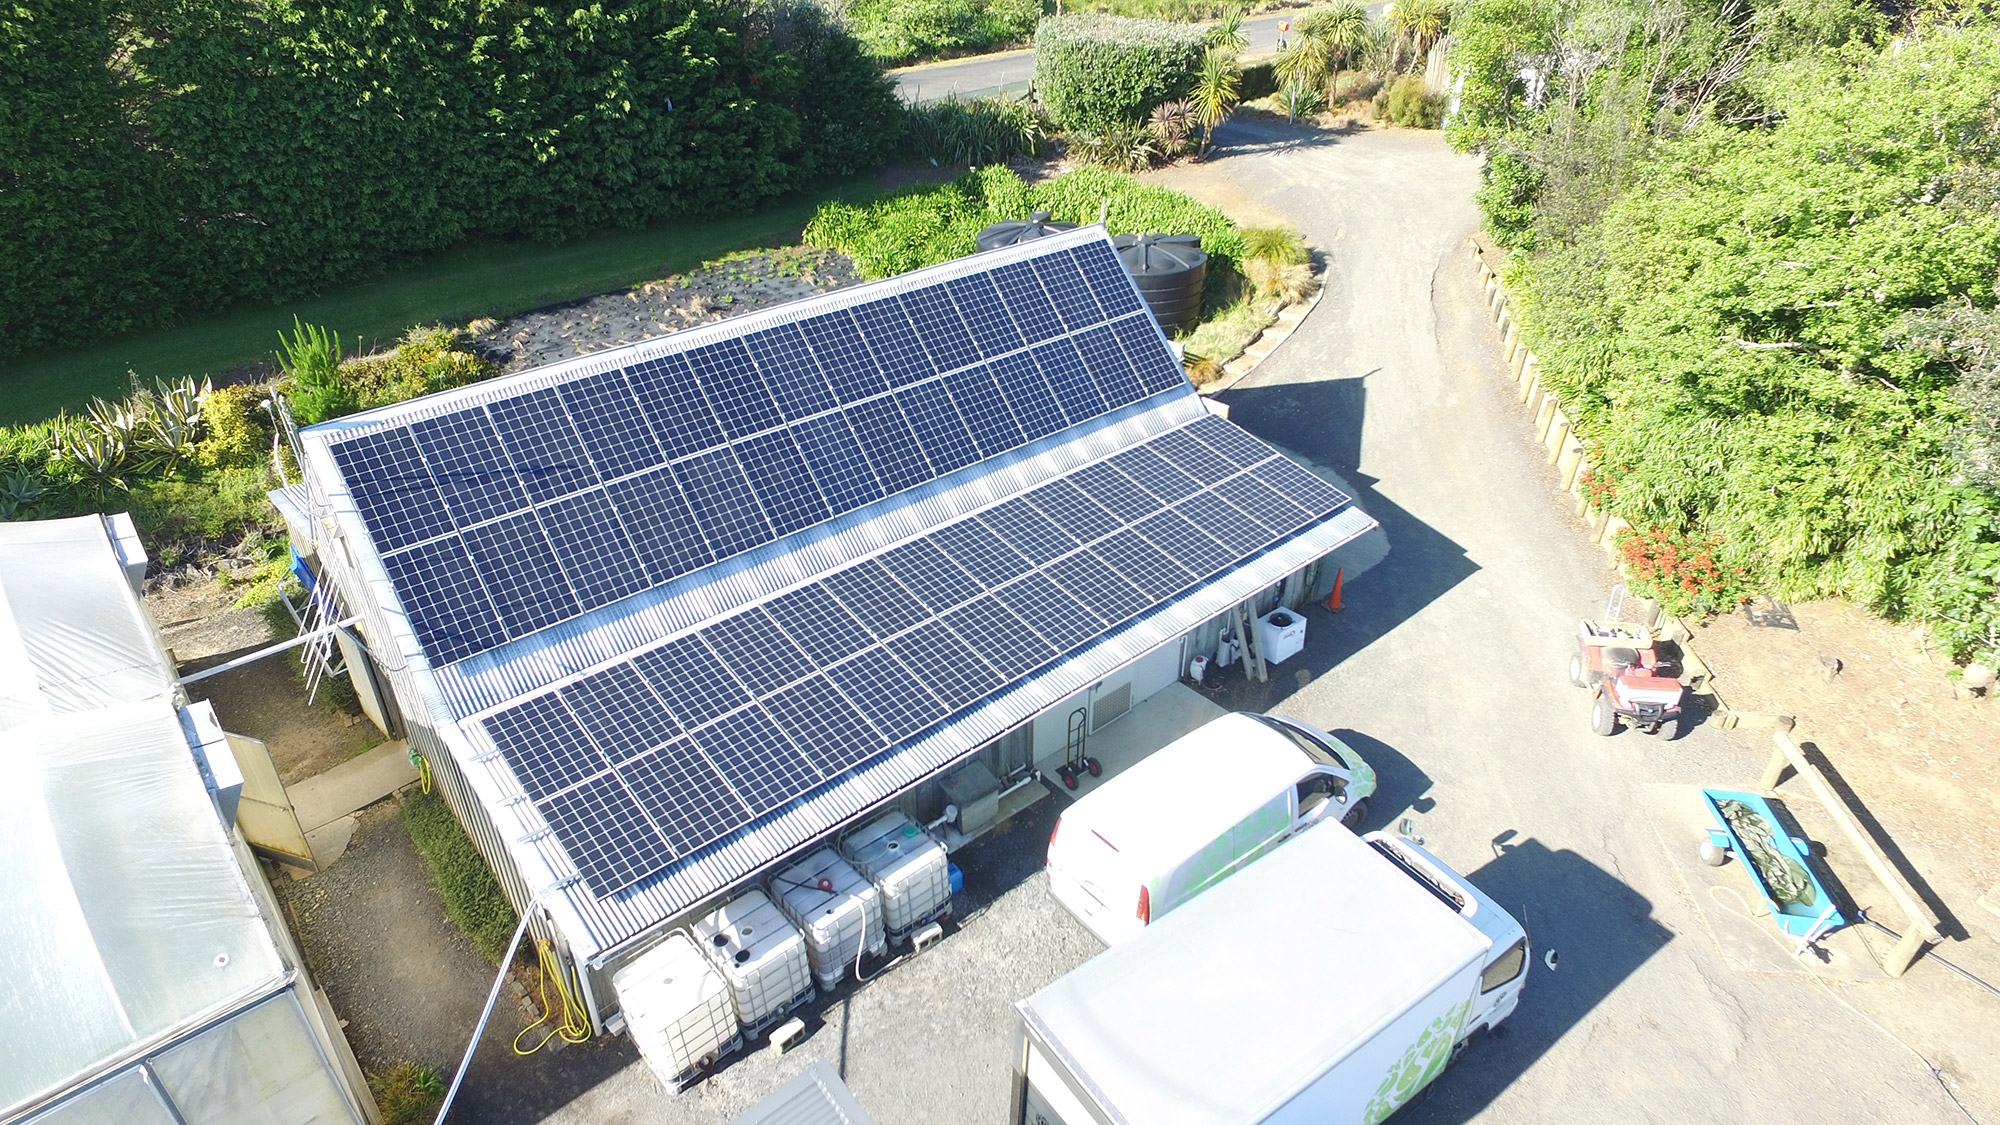 SkySolar-Solar-for-business-Scarborough-Fare-Herbs